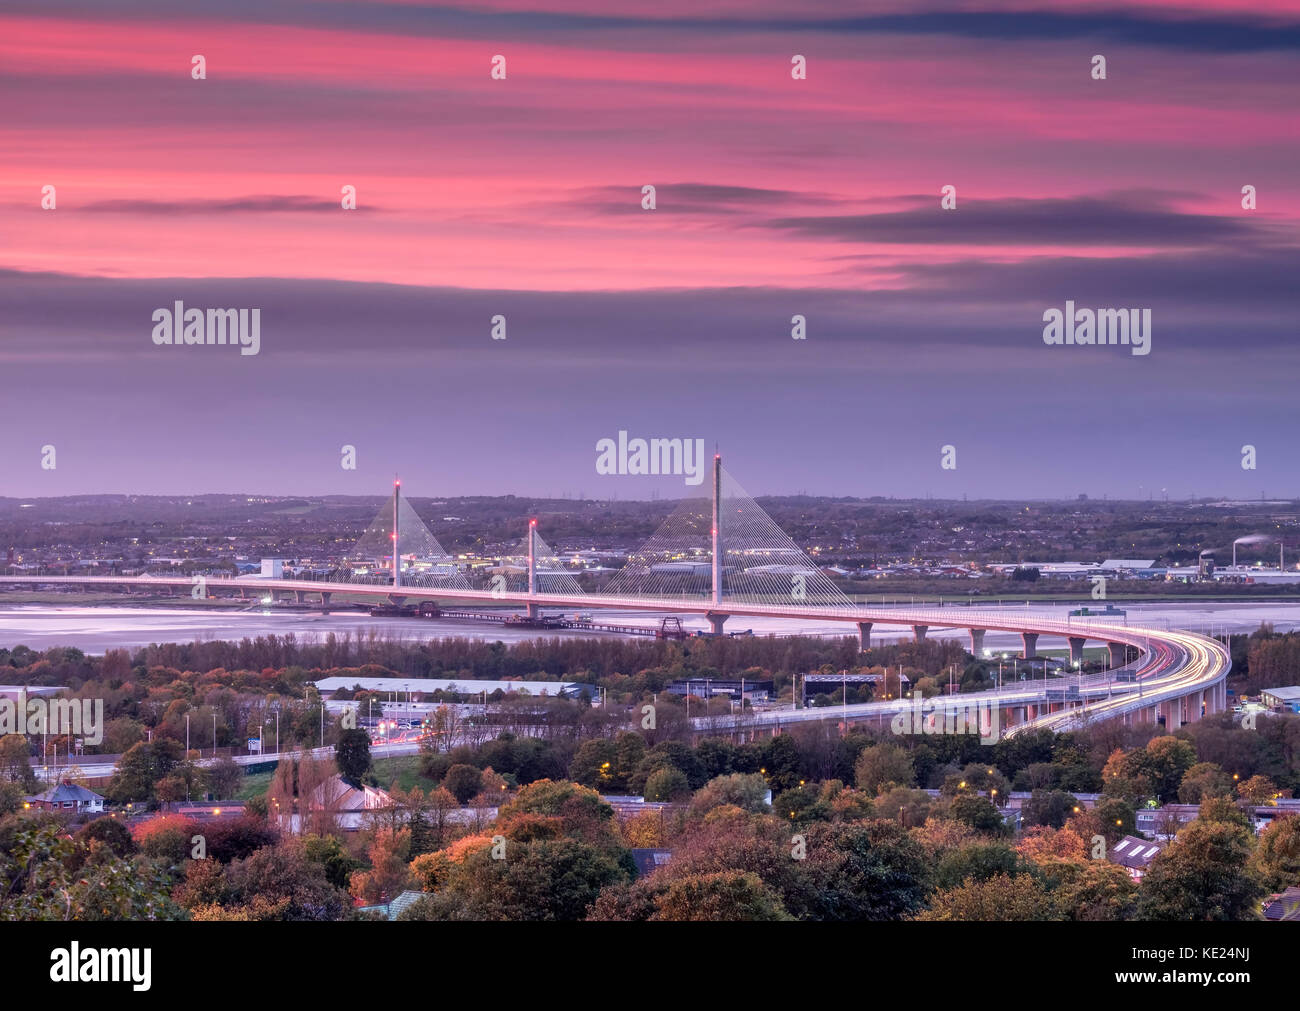 The Mersey Gateway Bridge over the Mersey Estuary between Runcorn and Widnes, Cheshire, England, UK - Stock Image